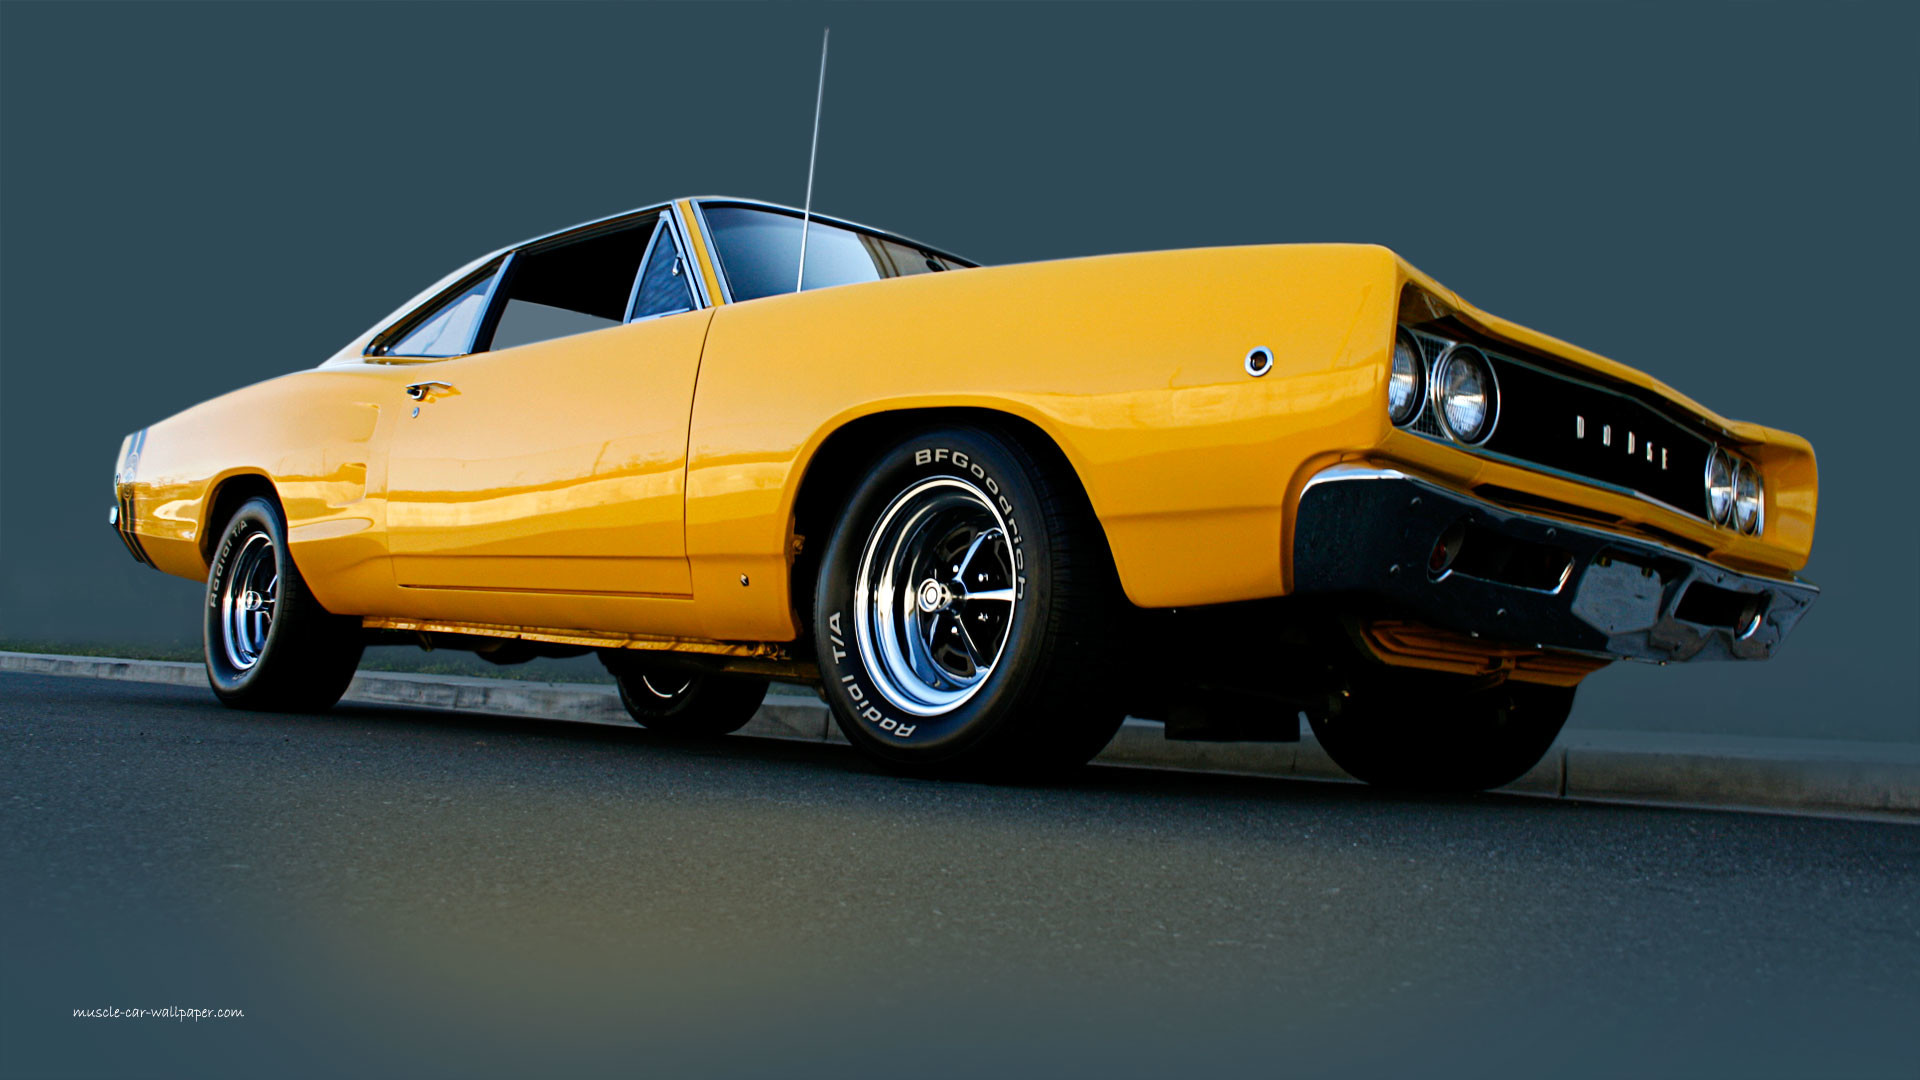 close-up,American closeup american yellow vintage old cars muscle cars usa  air old cars vintage cars american cars – Muscle cars Wallpaper – Desktop  …